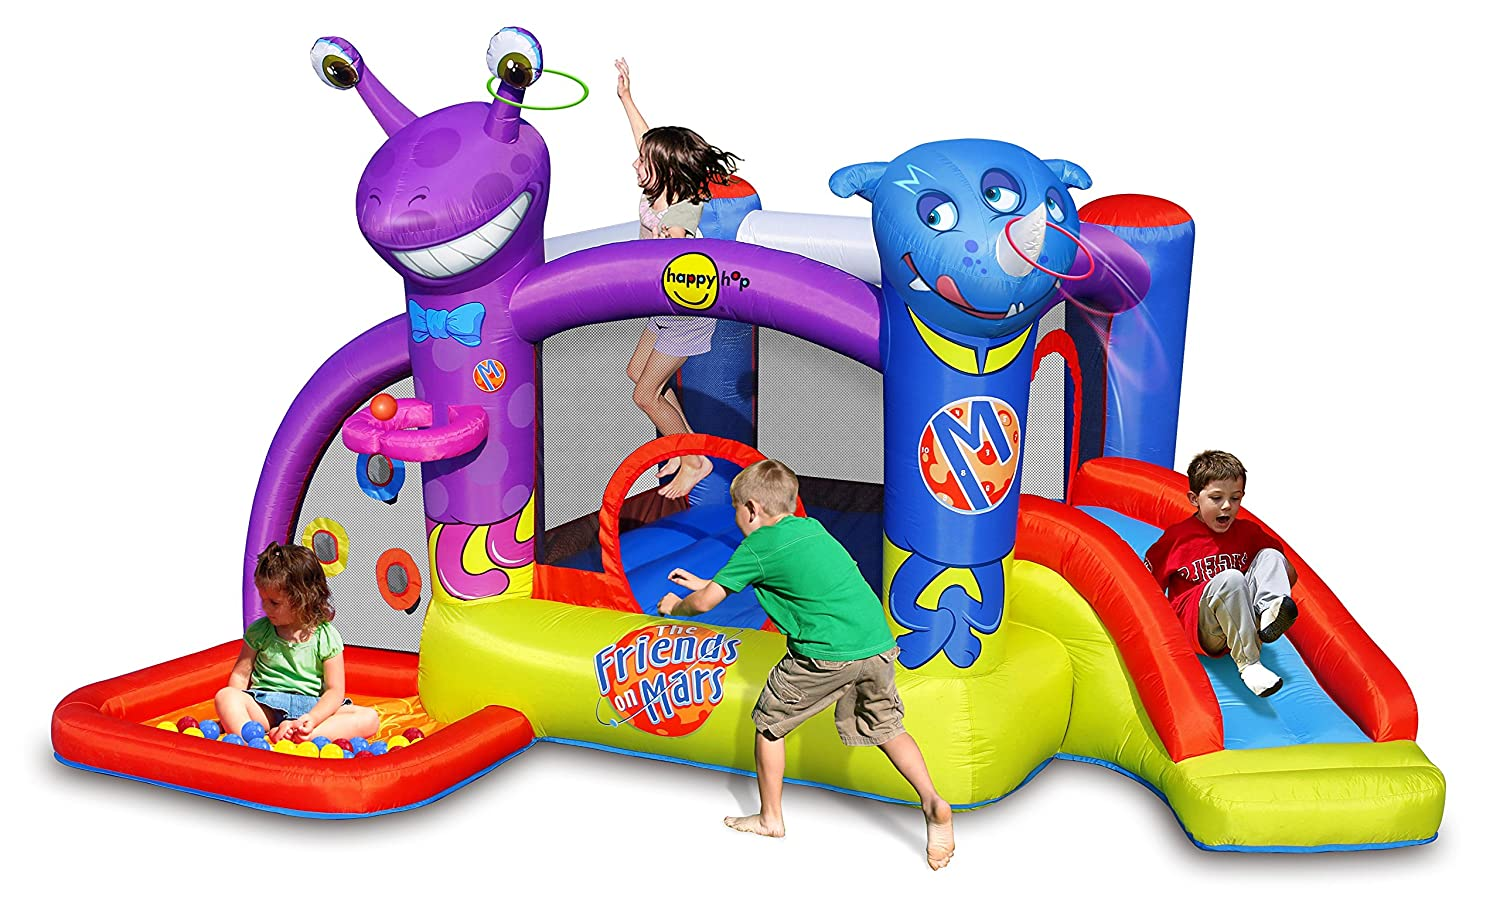 Inflable Friends on Mars 9273 Happy Hop: Amazon.es: Juguetes y juegos